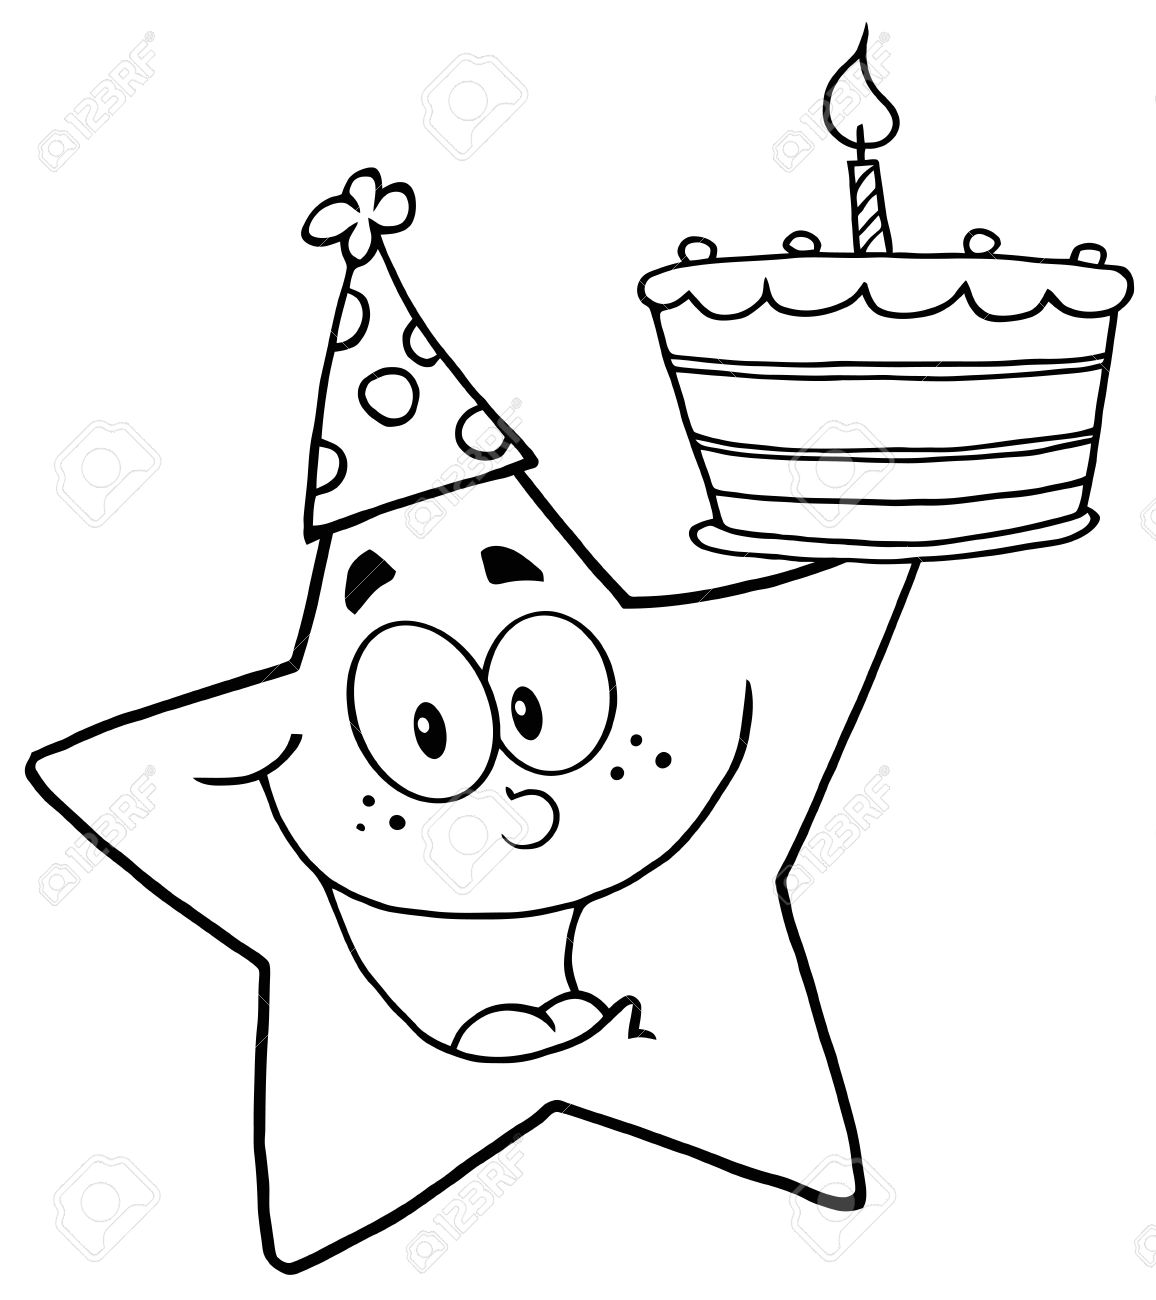 Outline Happy Star Holding A Birthday Cake Royalty Free Cliparts